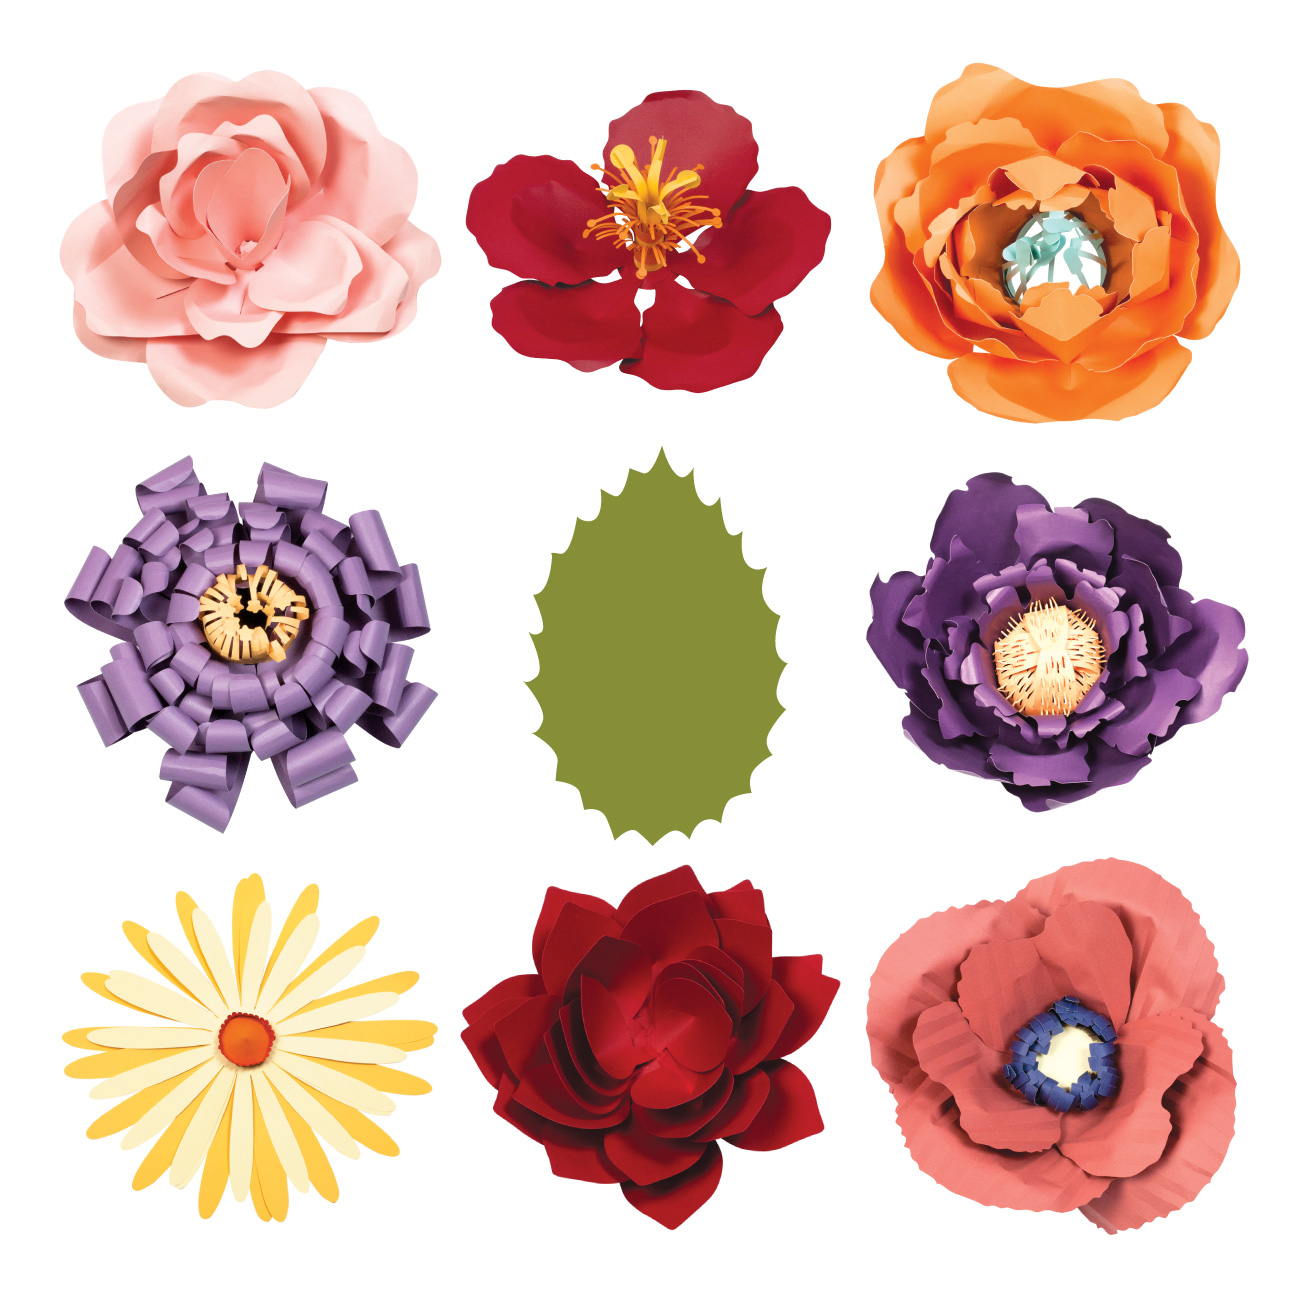 Petal clipart giant flower  Flowers Giant